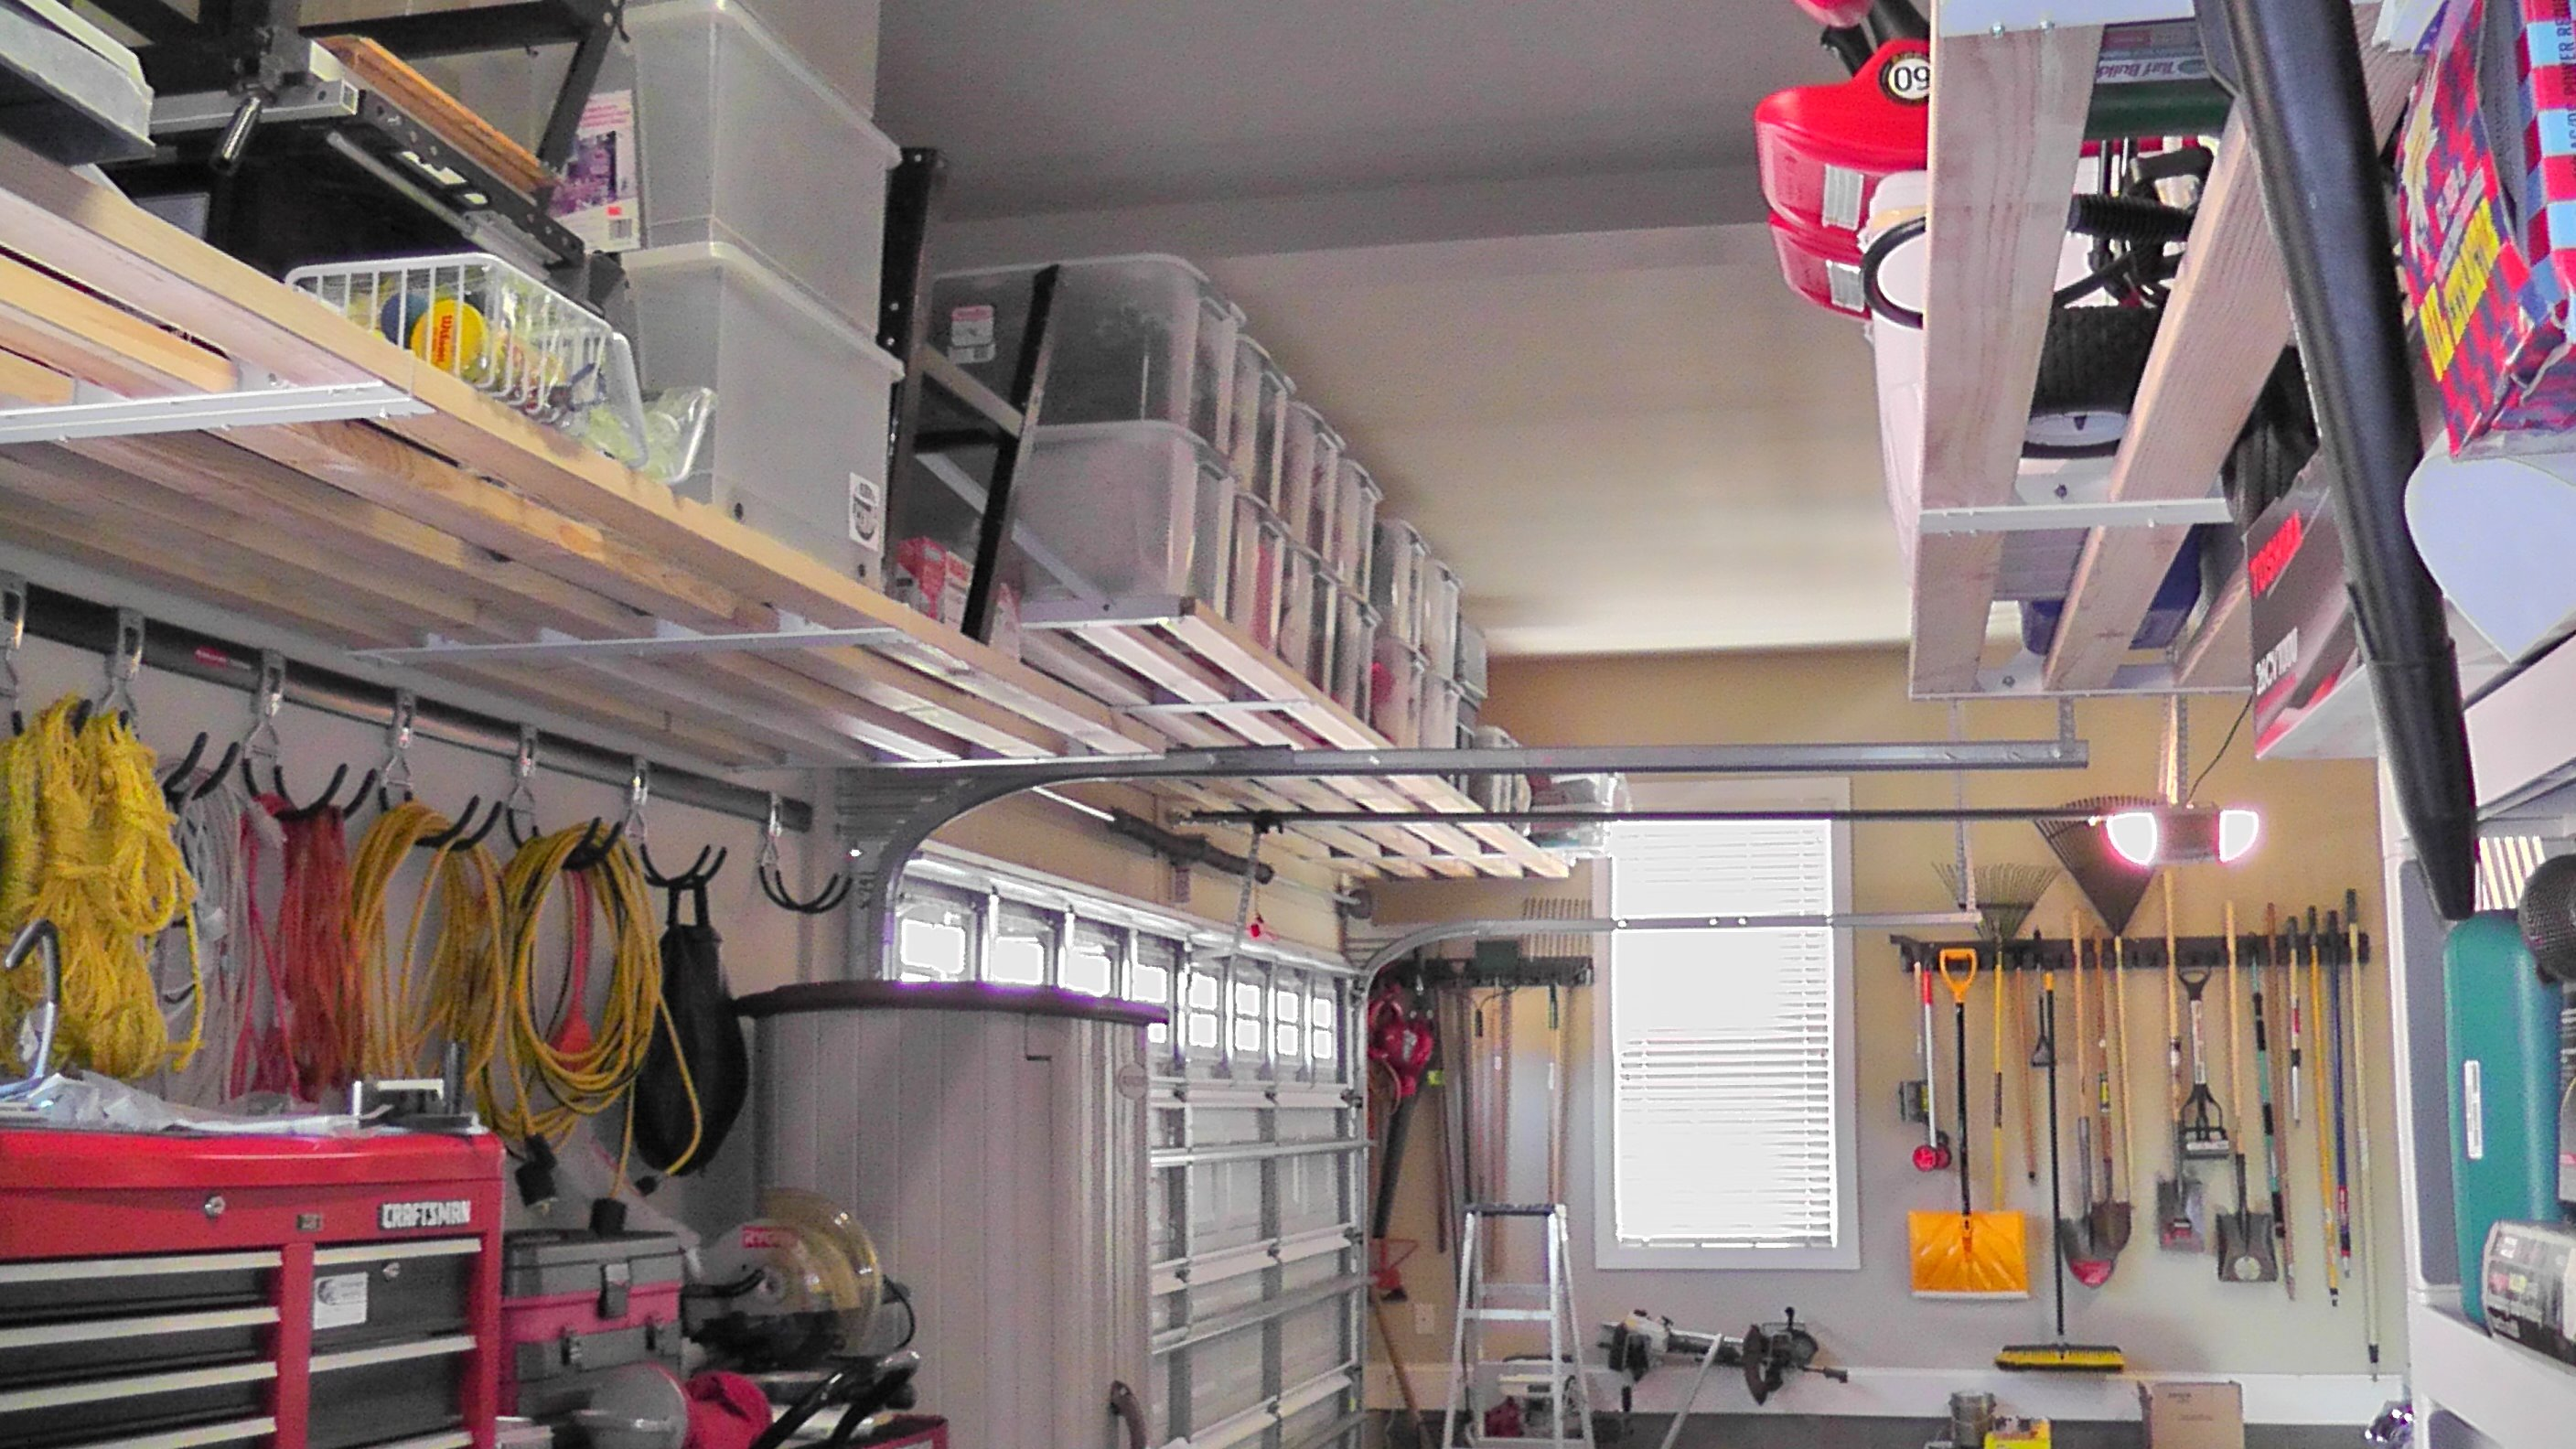 Do it yourself garage organization large and beautiful photos do it yourself garage organization photo 1 solutioingenieria Gallery